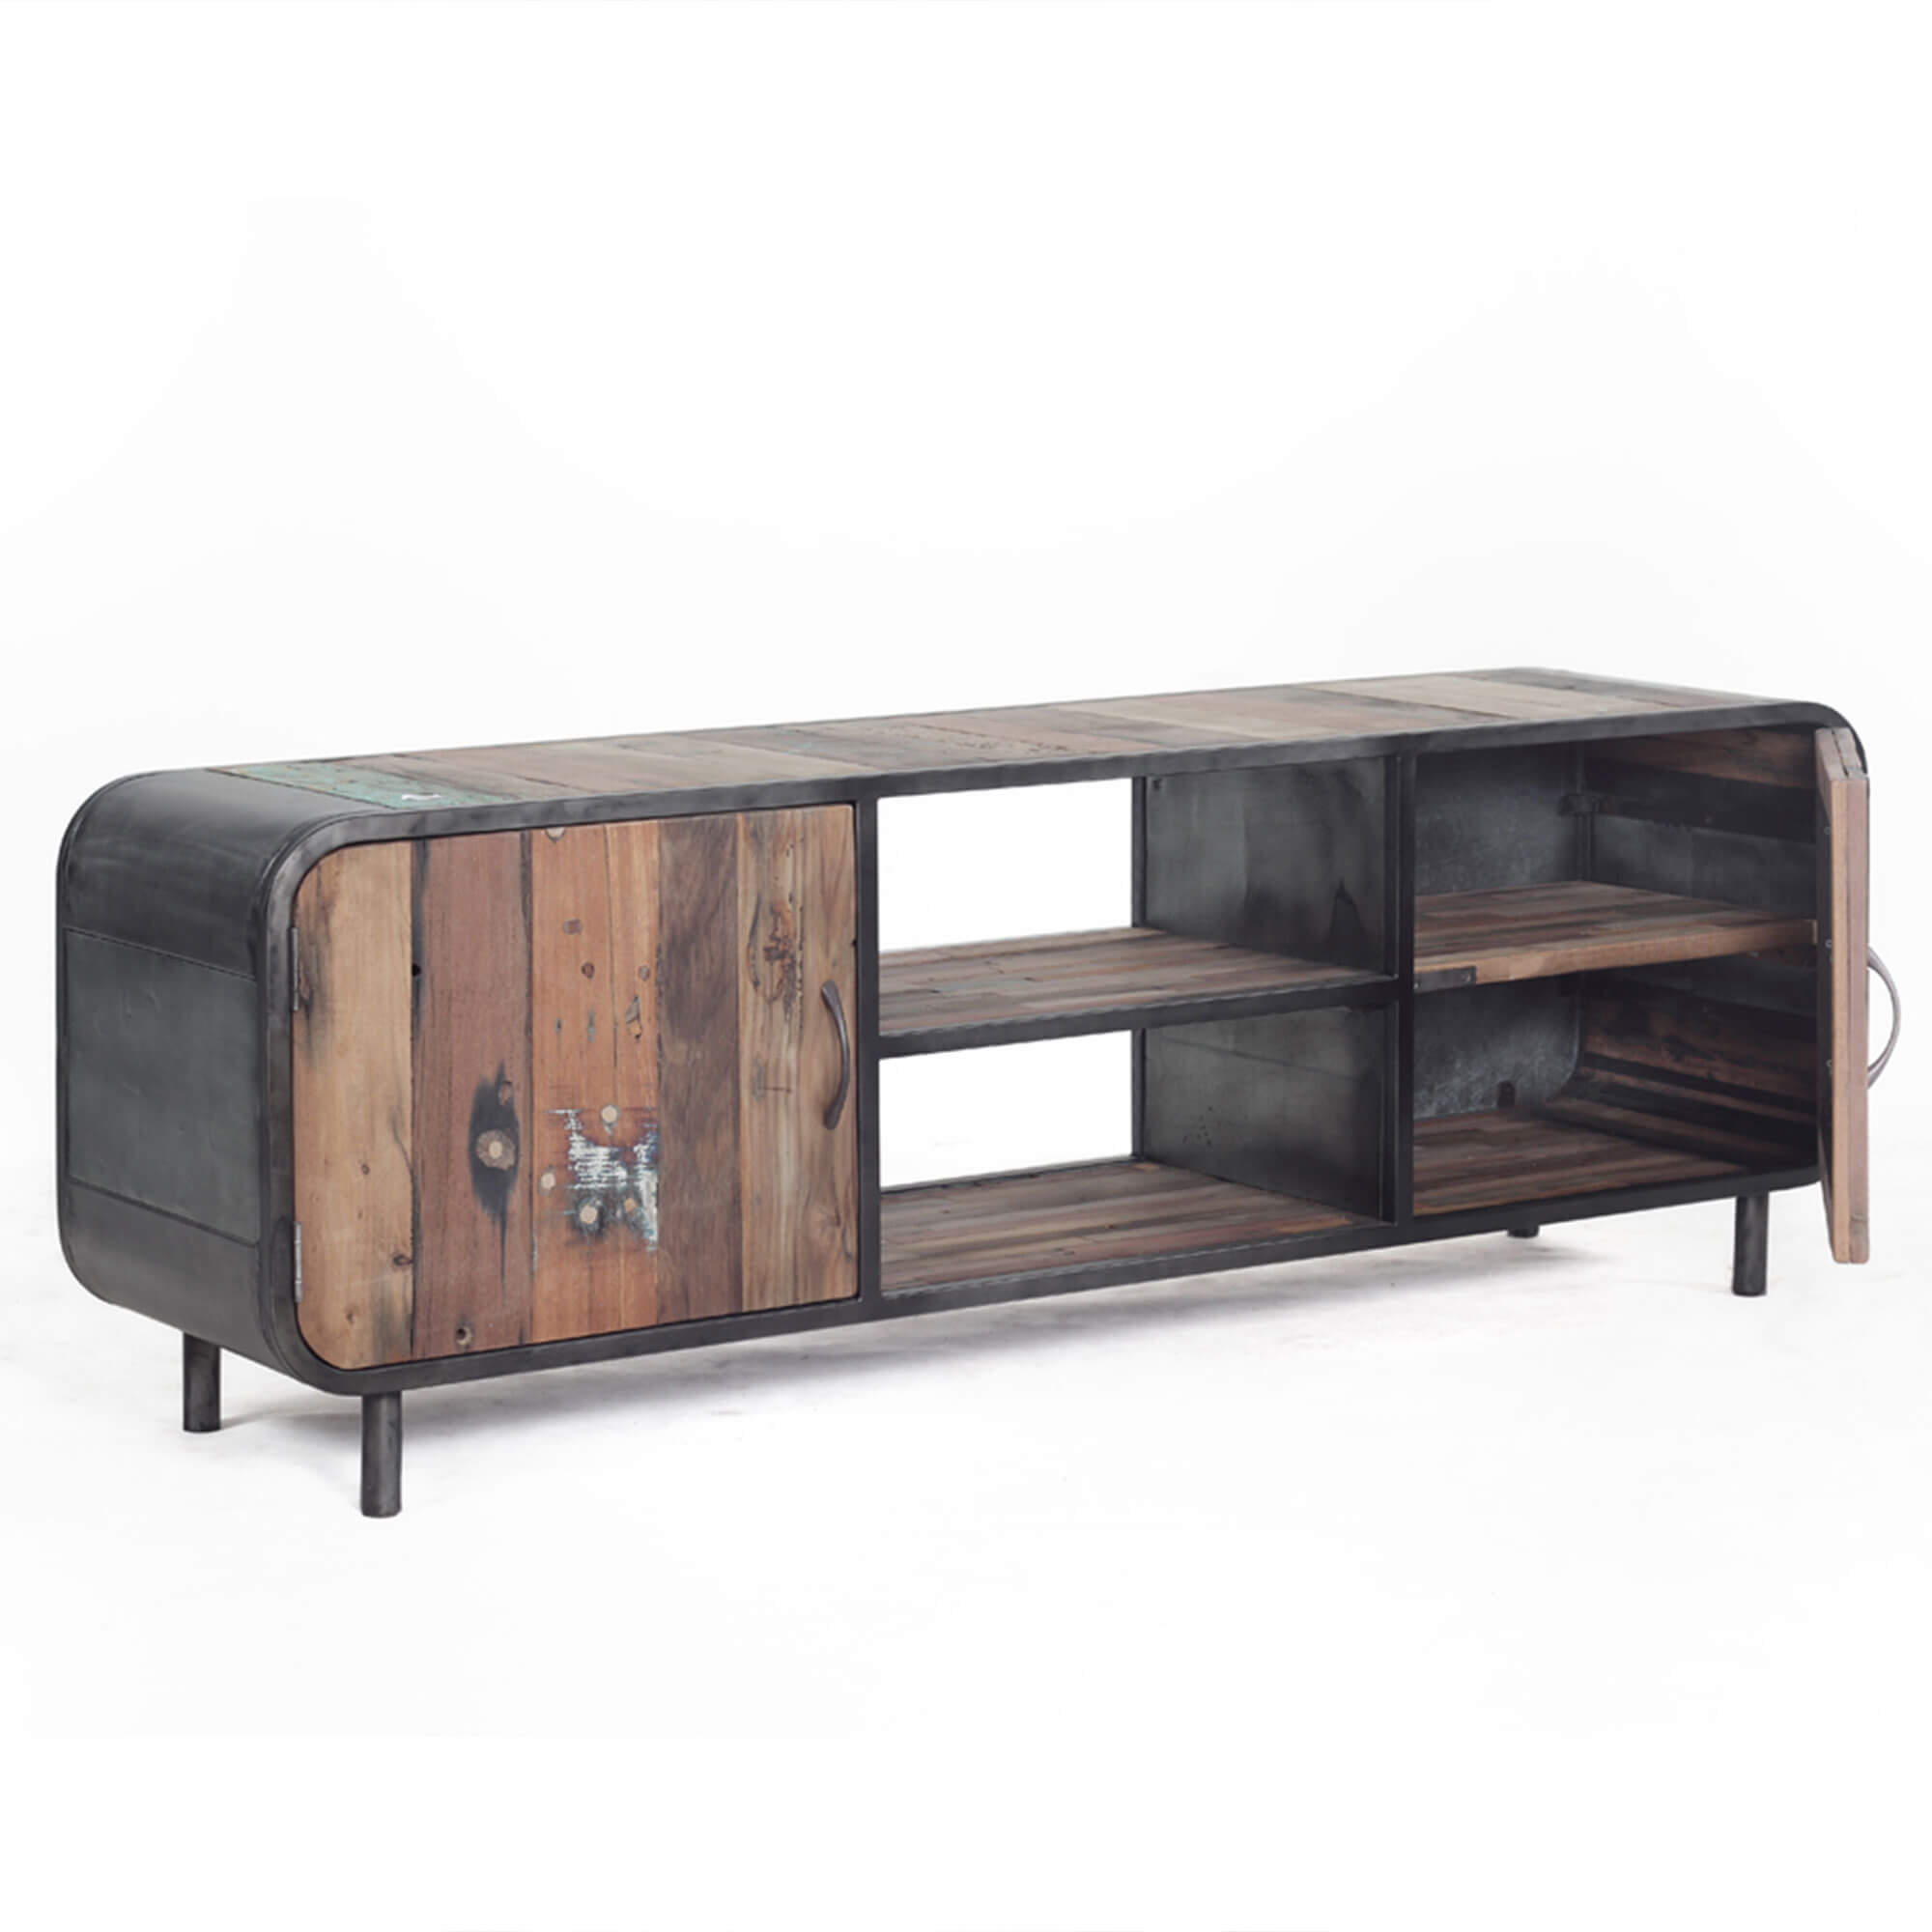 Mango Wood|Reclaimed Wood | TV Stand | FSUK-BBTIC38